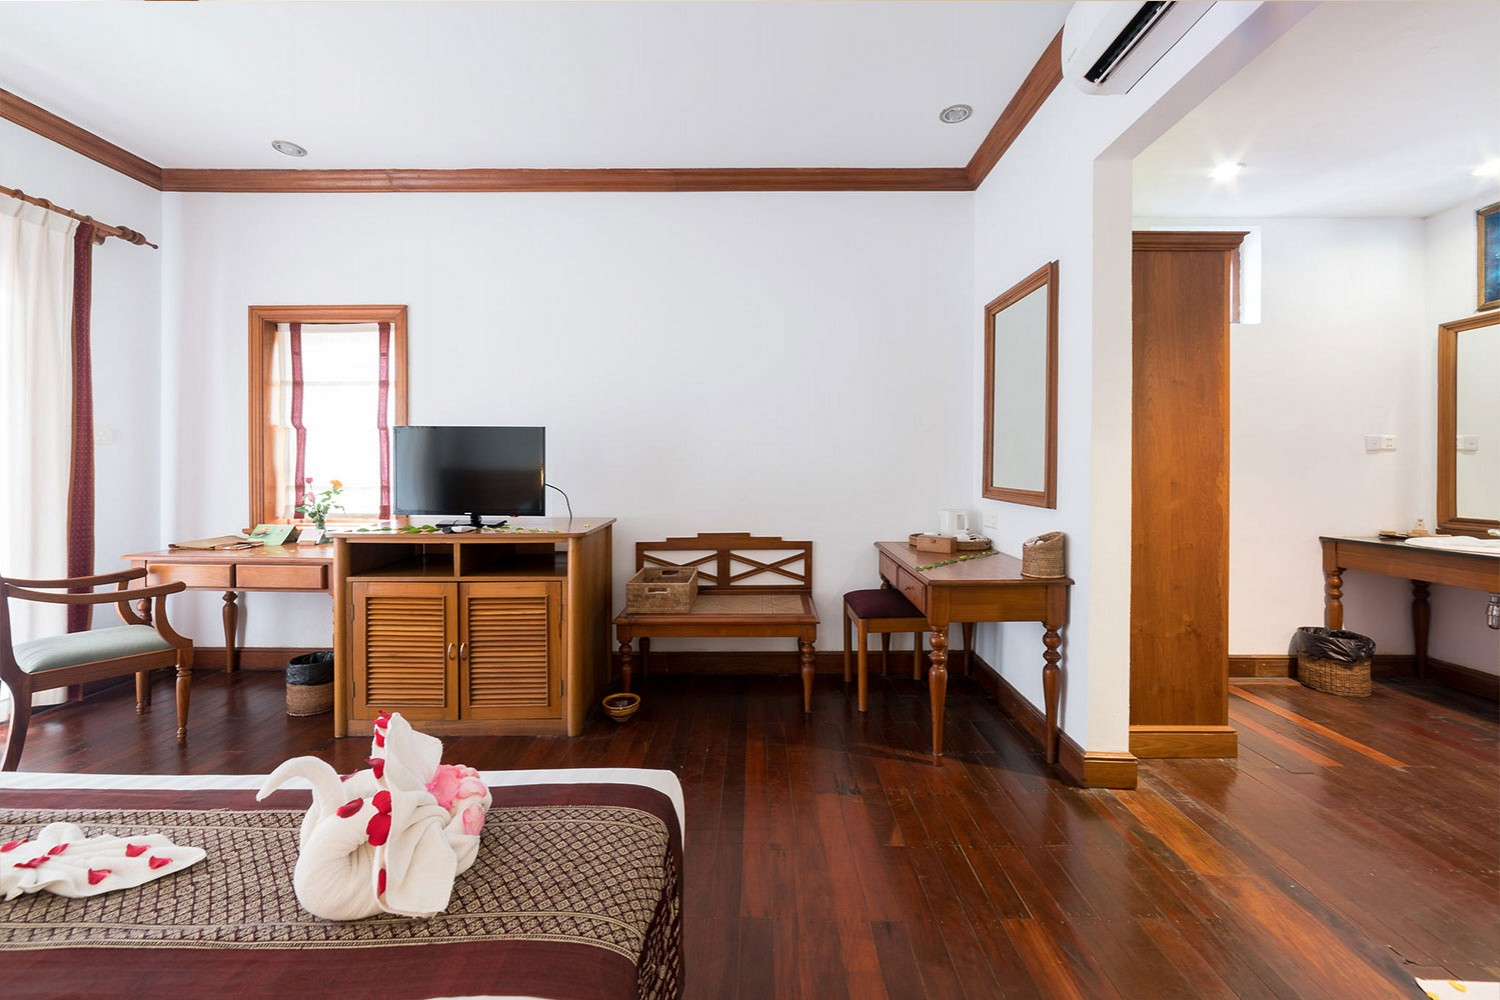 Hotels in ngwe saung beach Myanmar, Hotel in ngwe saung beach Myanmar